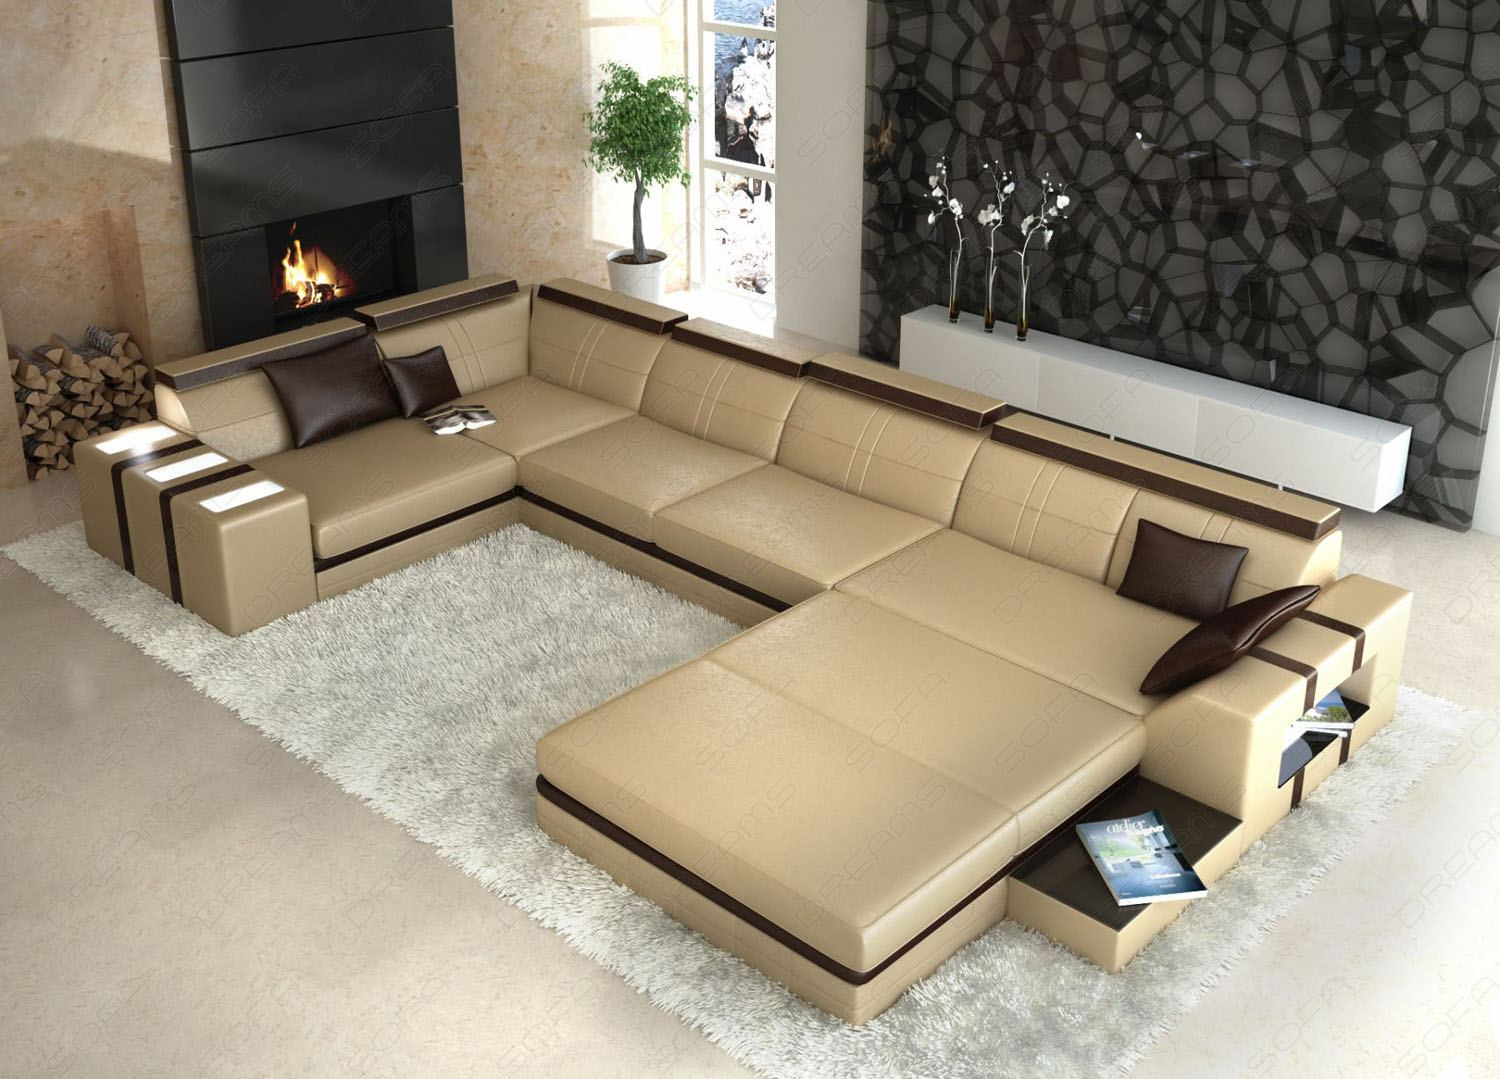 Couch Braun Beige Best 25 Couch Ideas On Pinterest Xxl Sofa Bei Roller Carprola For Mega Sofa